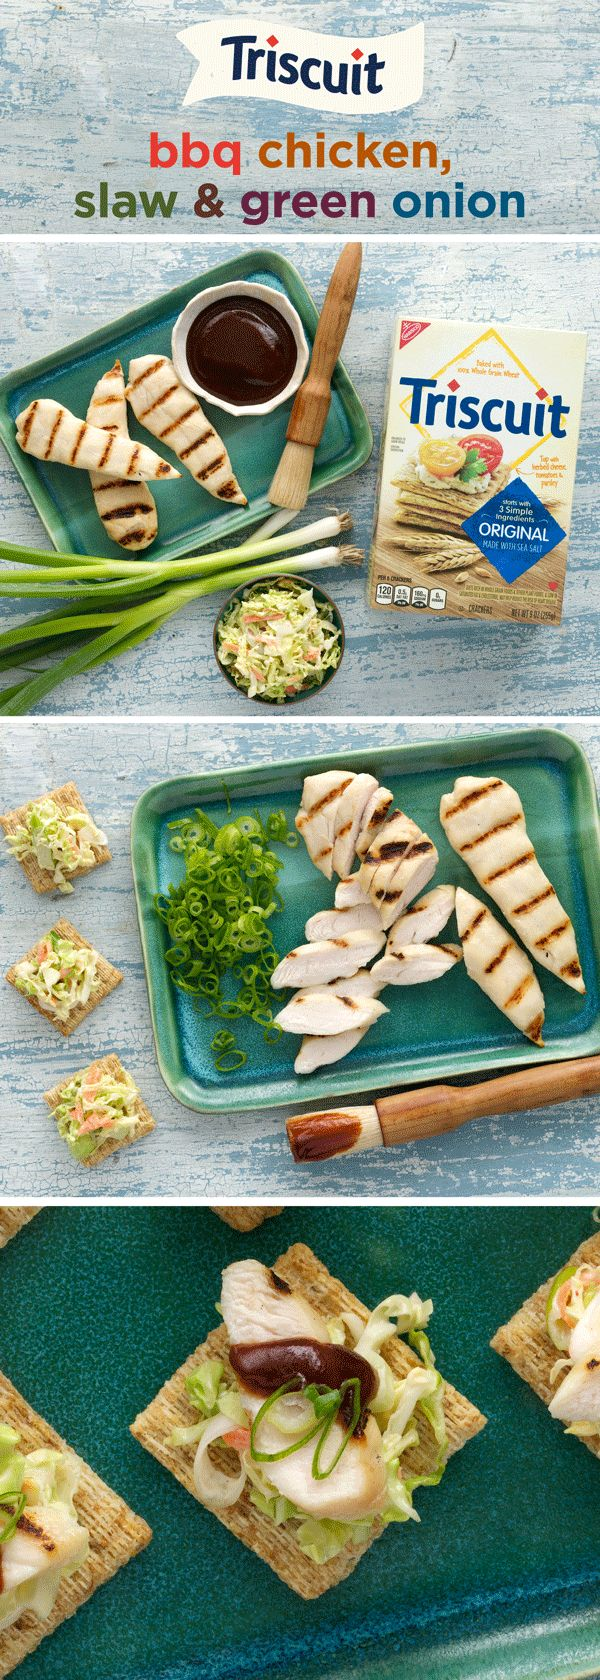 BBQ fan? So are we! Top your favorite TRISCUIT Crackers with a scoop of coleslaw and sliced grilled chicken, spoon on a little barbecue sauce, then sprinkle with chopped green onions for the finishing touch. It's like a picnic in your mouth! Bonus: this is a great recipe to make use of leftover chicken!